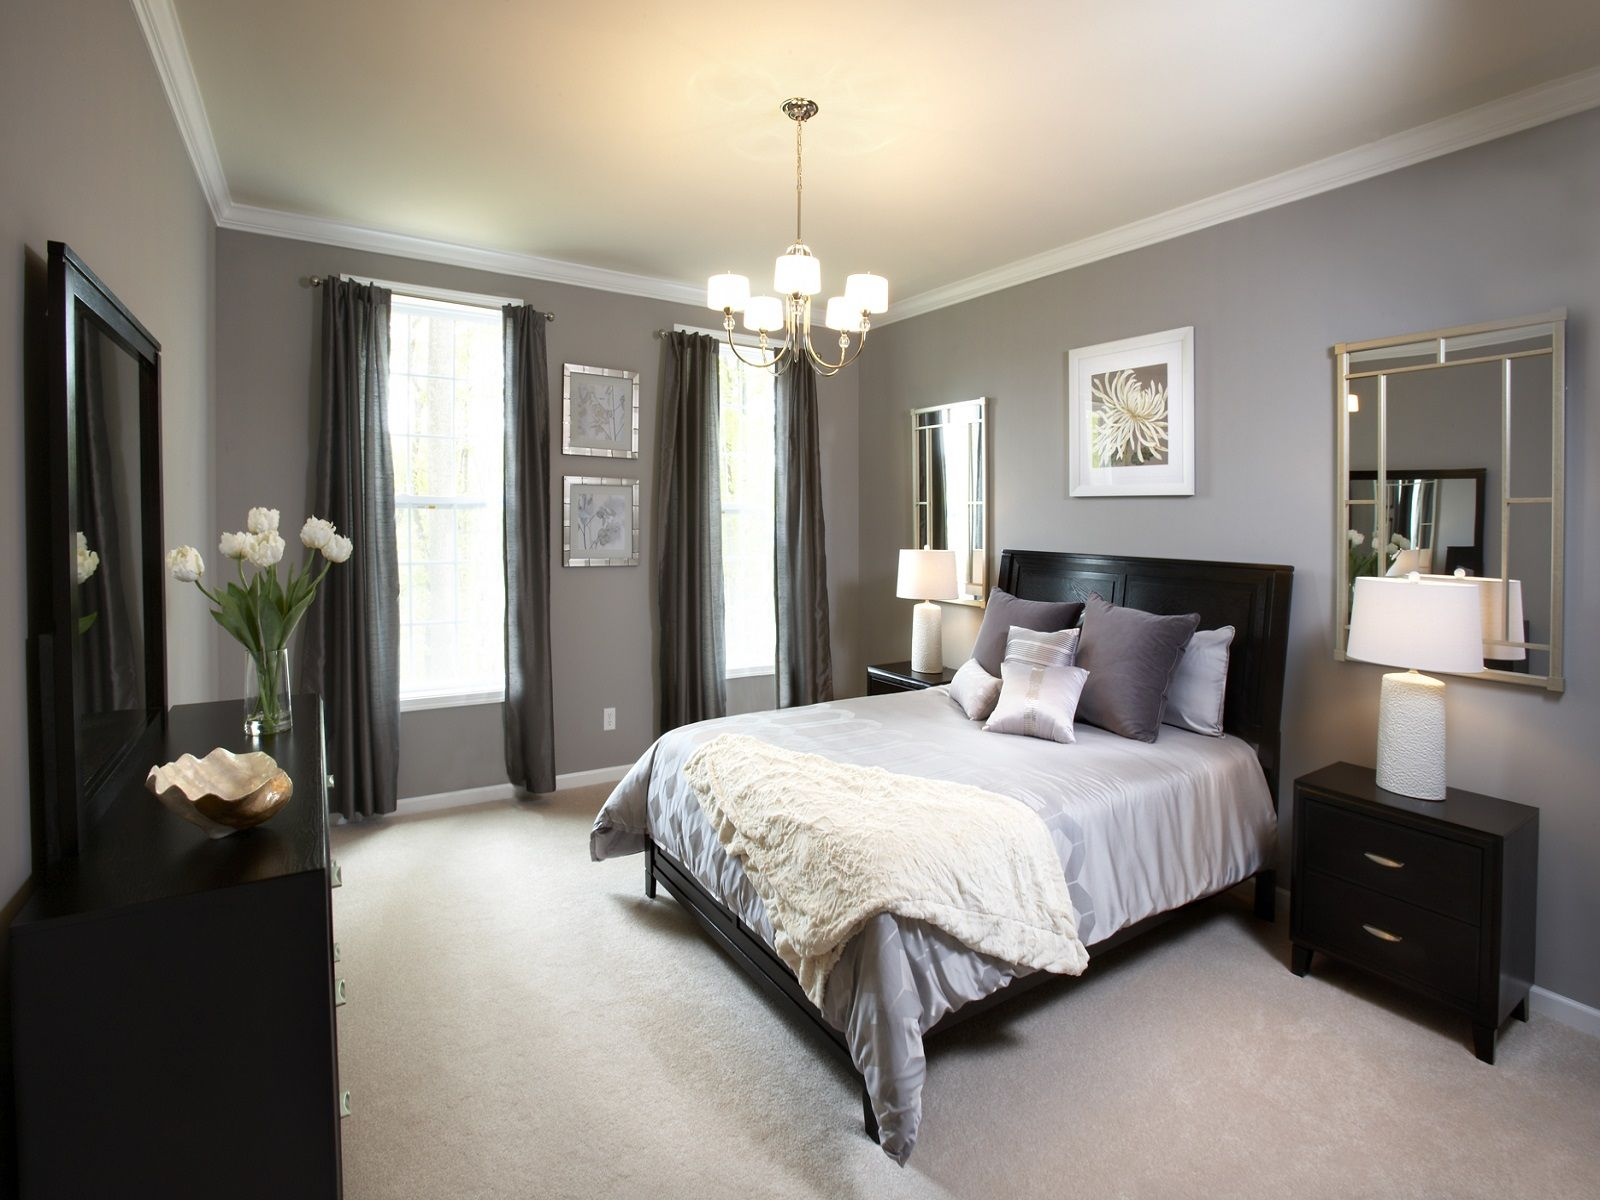 Bedroom paint ideas grey - 17 Best Ideas About Grey Bedroom Furniture On Pinterest Bedroom Furniture Grey Painted Furniture And Dressers